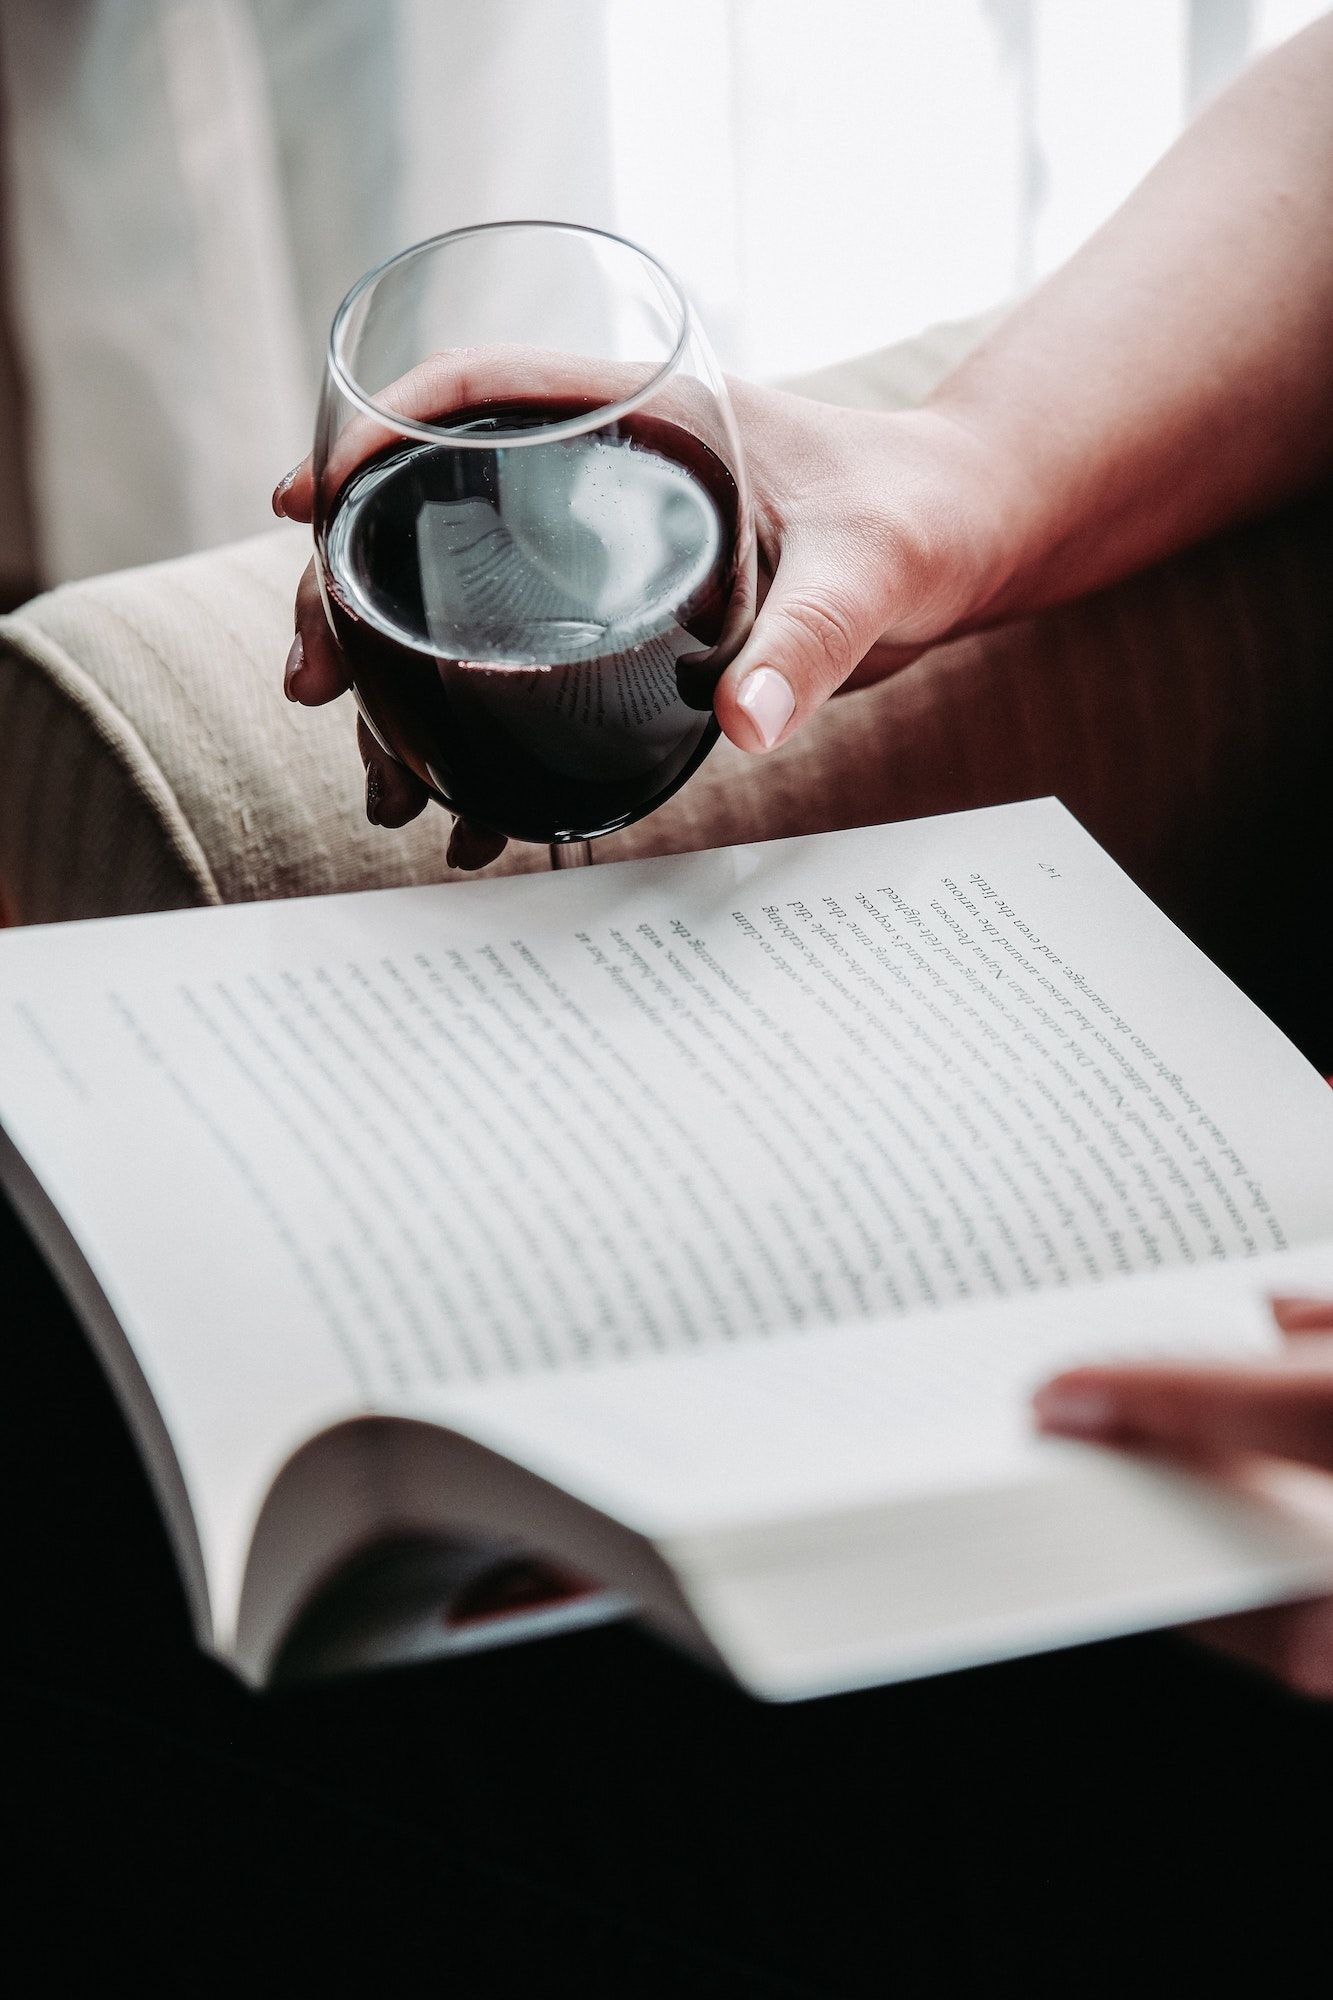 5 Books on Wine to Help Deepen Your Knowledge at Home